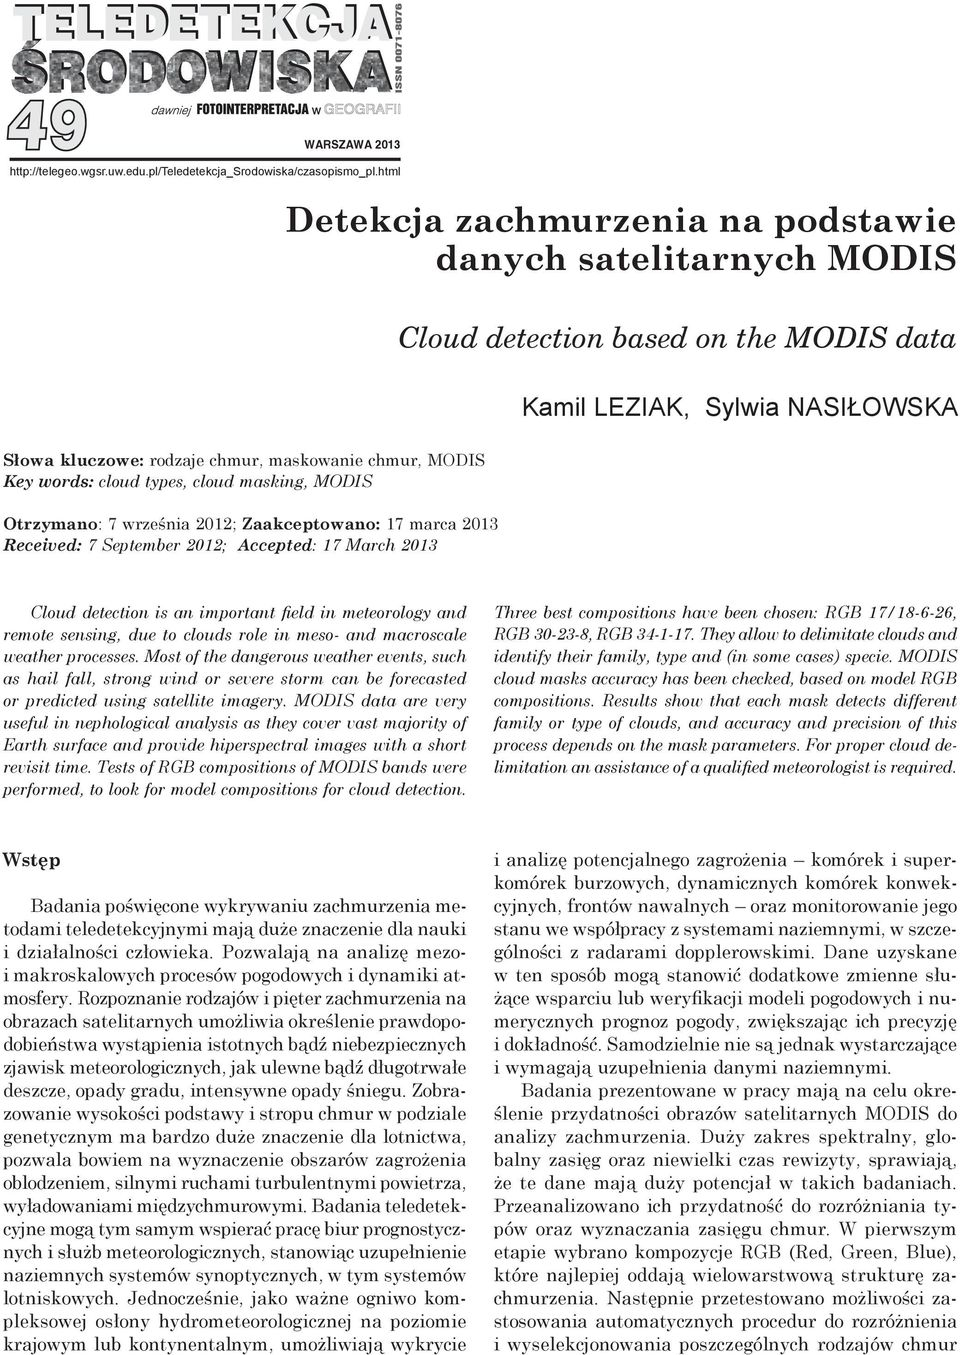 words: cloud types, cloud masking, MODIS Otrzymano: 7 września 2012; Zaakceptowano: 17 marca 2013 Received: 7 September 2012; Accepted: 17 March 2013 Cloud detection is an important field in